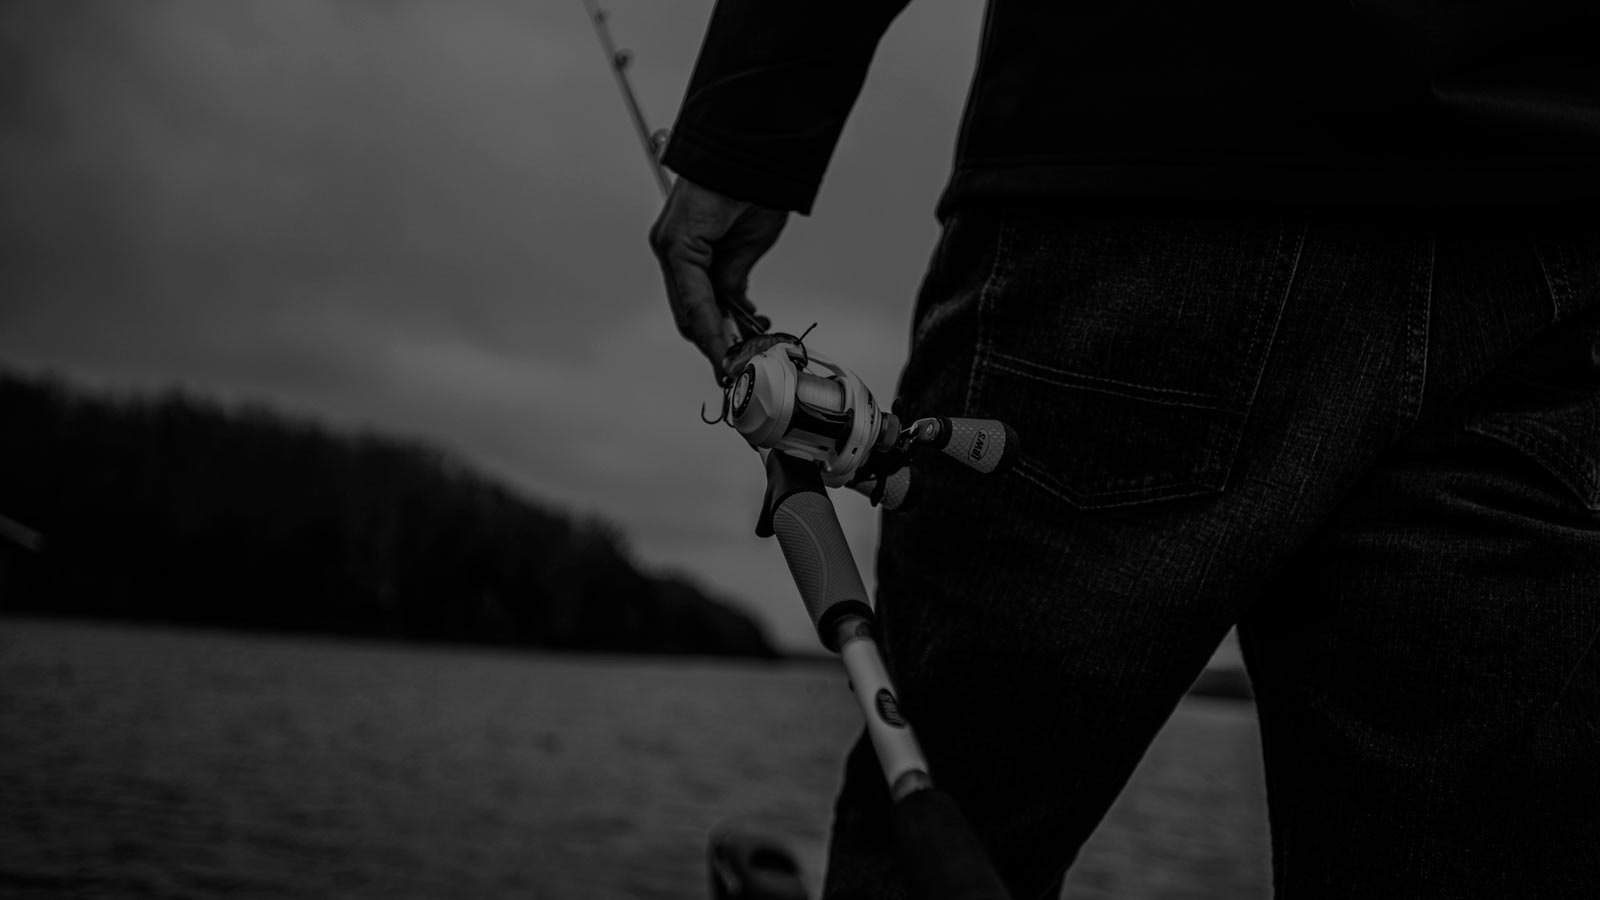 Lews Fishing Rod and Reel in Angler's Hand